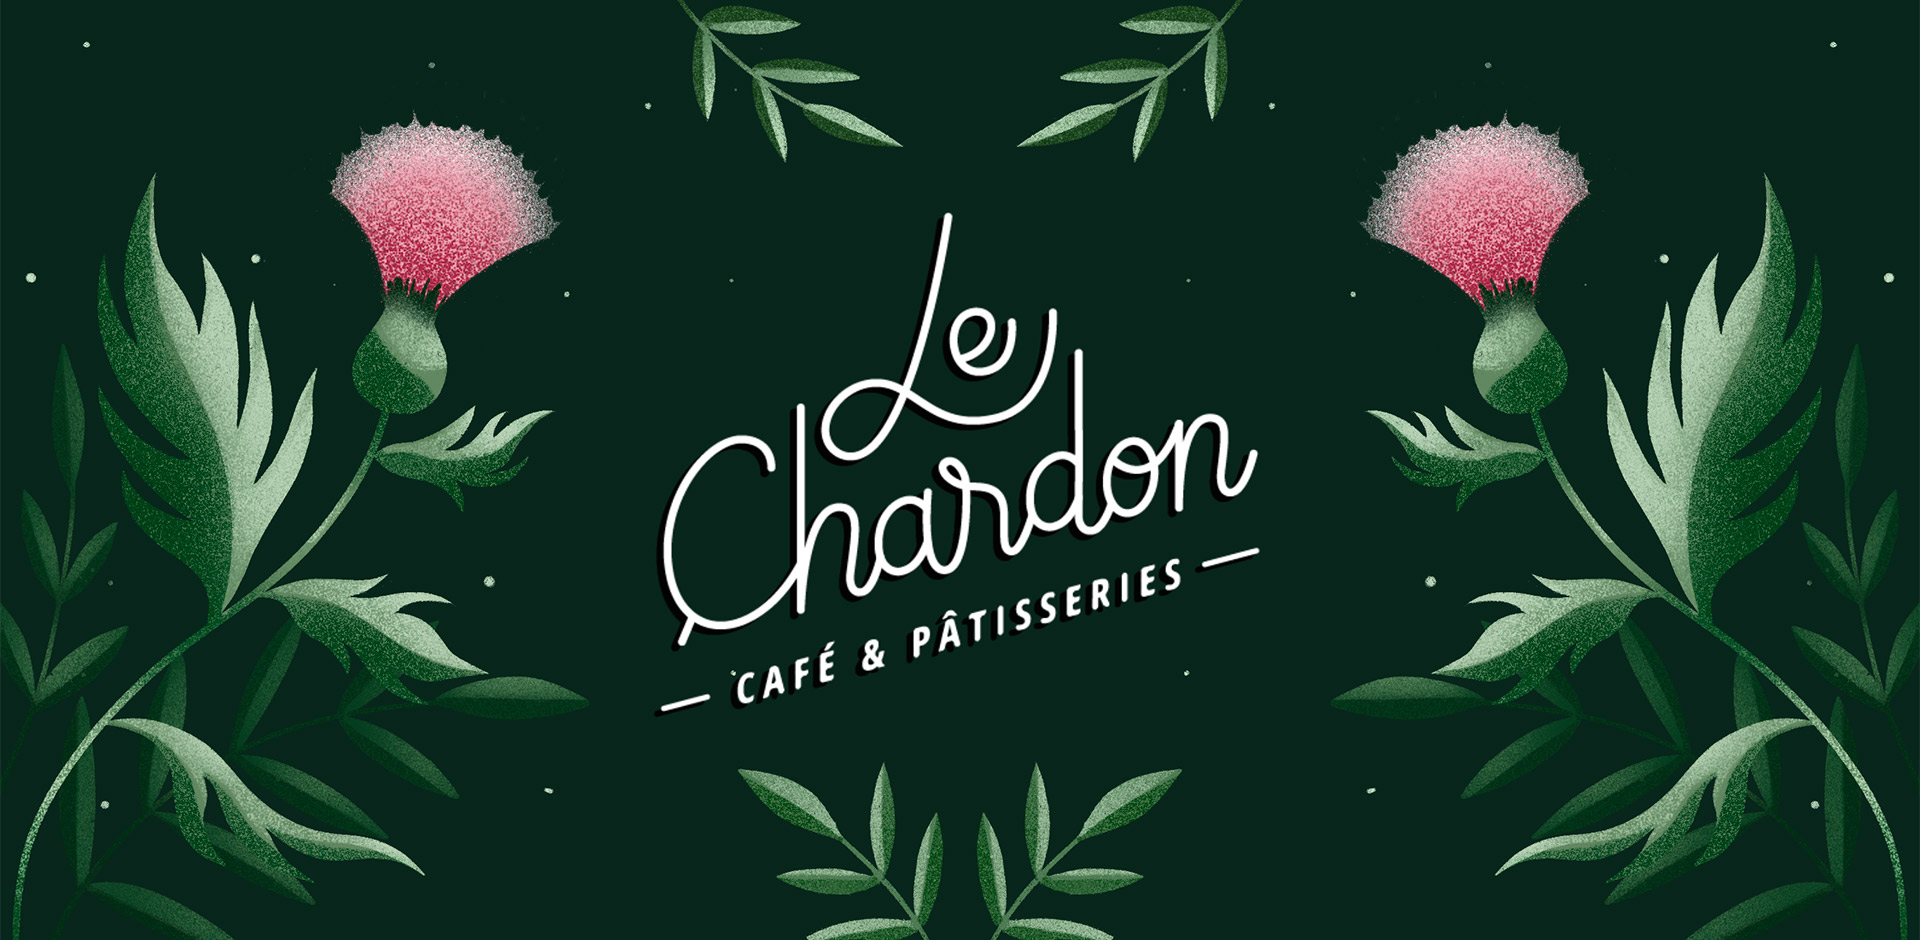 Le chardon – Lucile Escallier 1